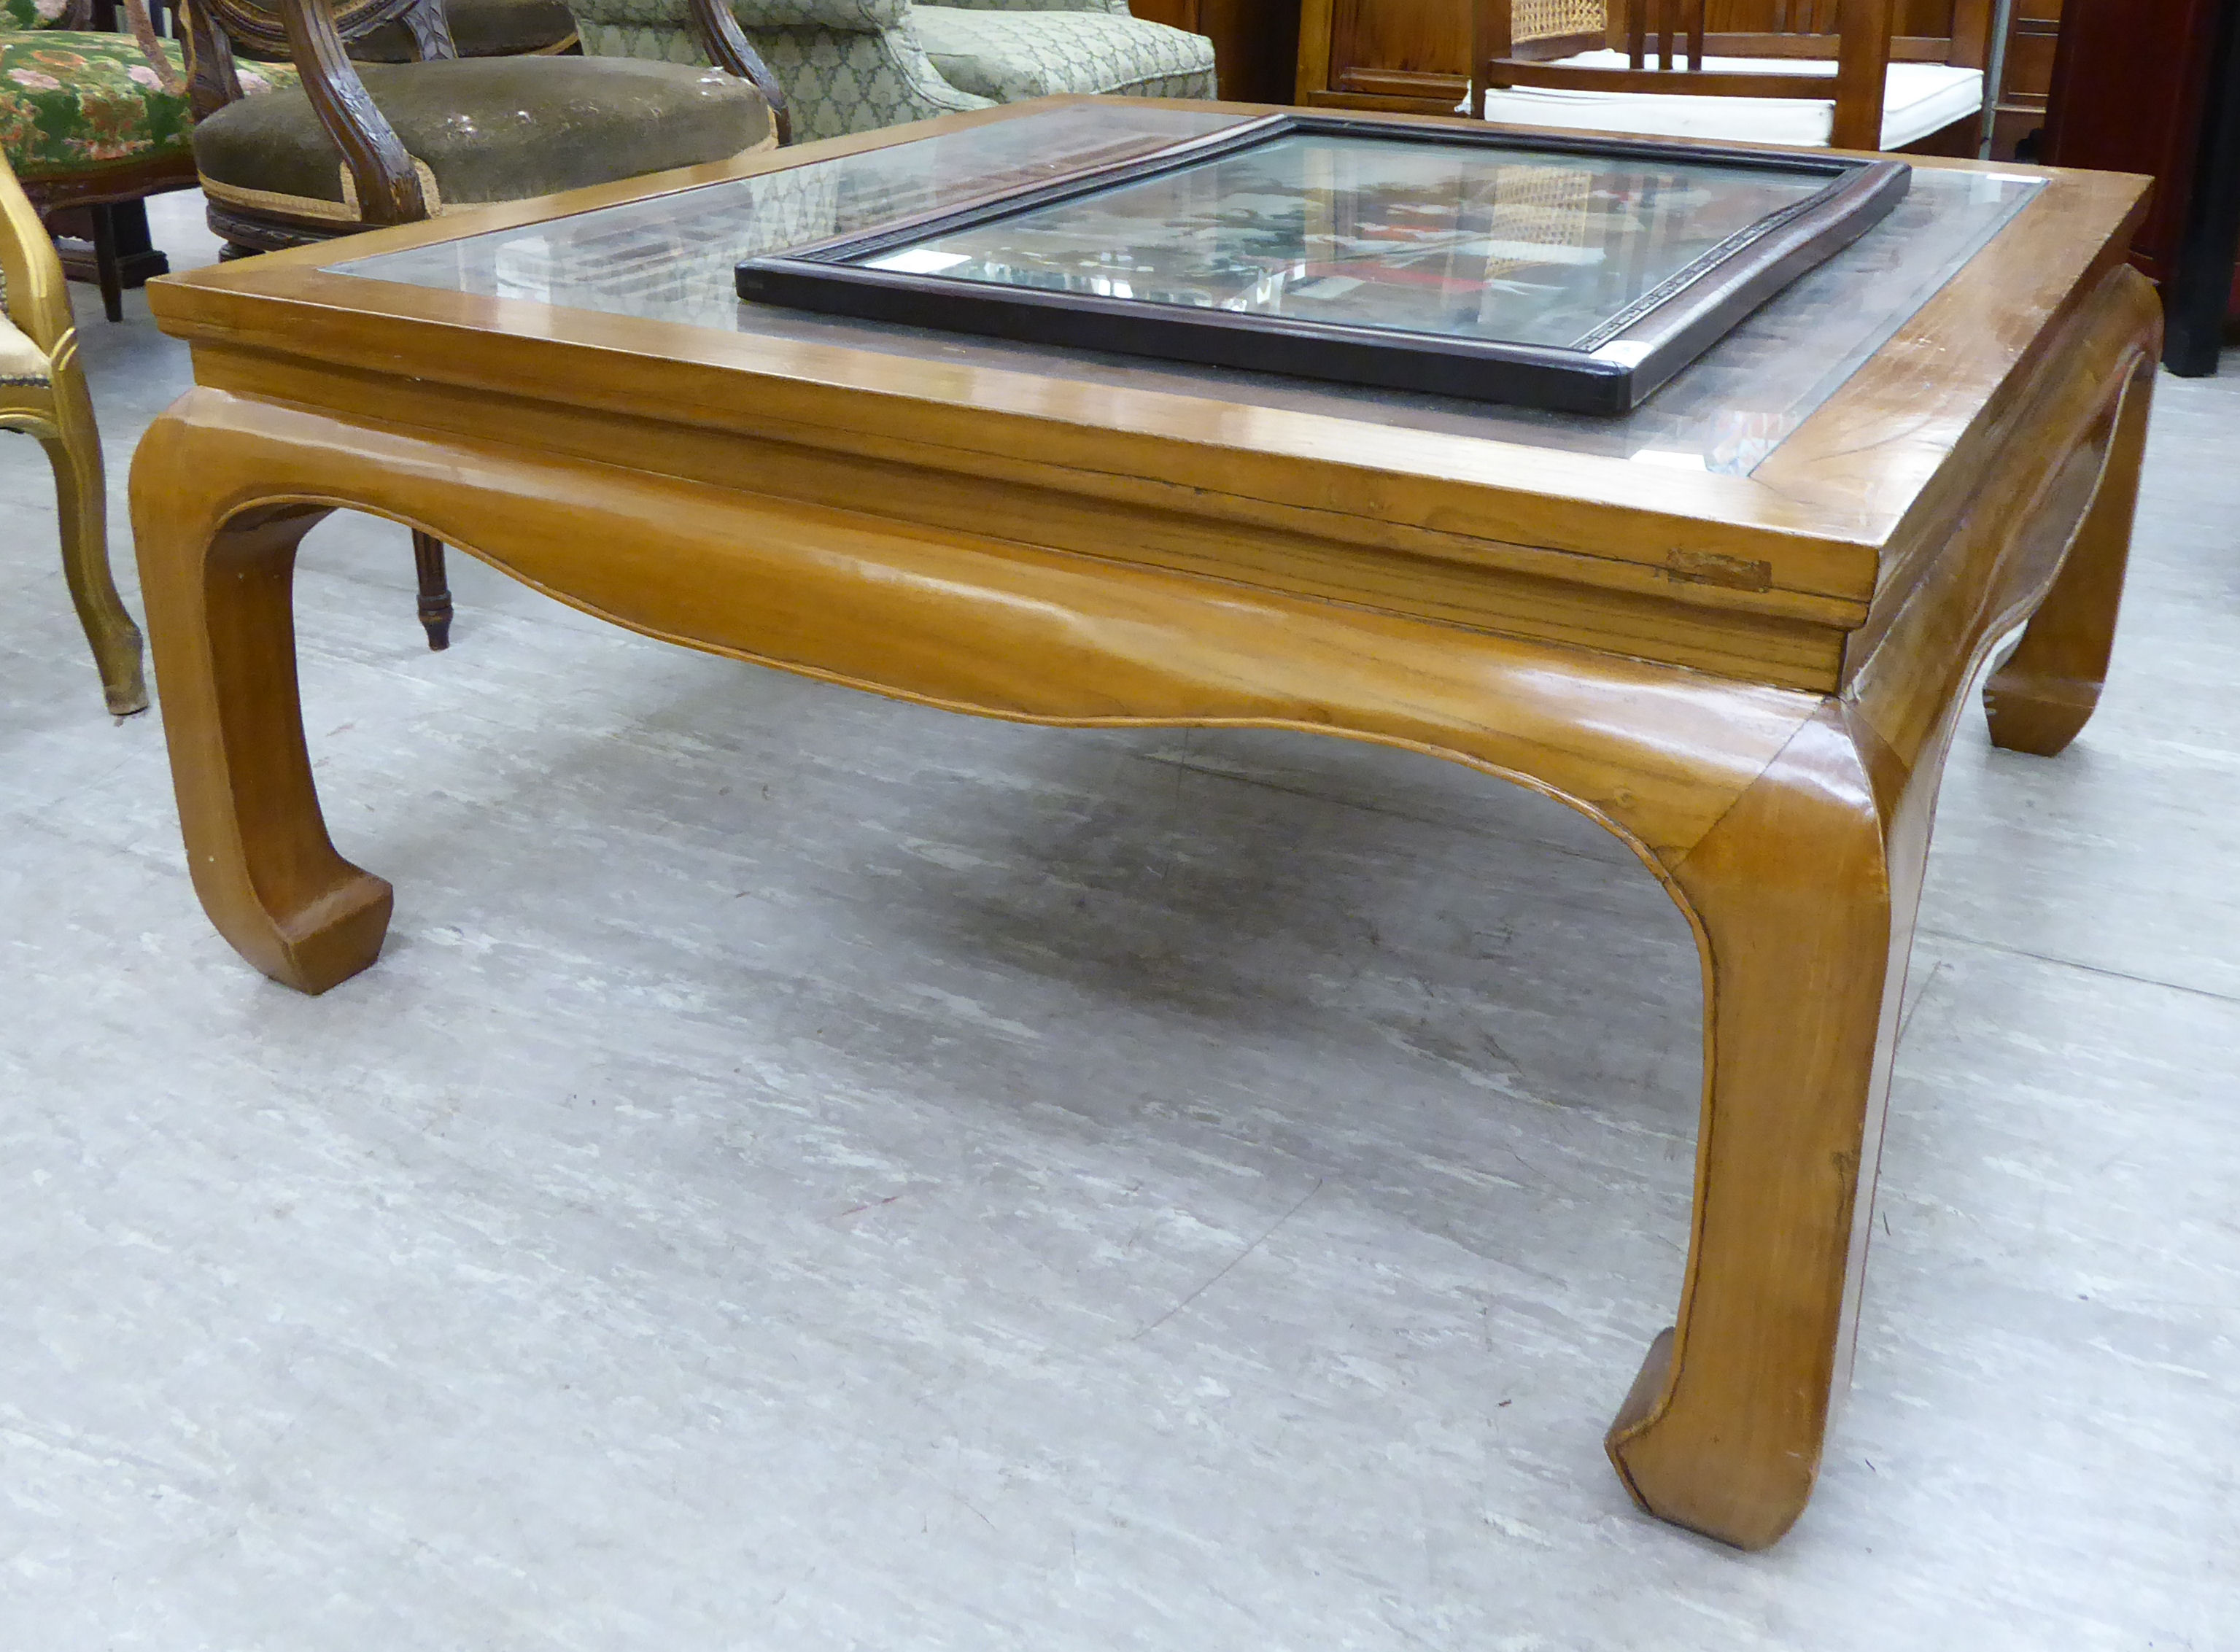 Lot 36 - A modern Chinese lacquered elm coffee table, the openwork top with a glass panel, raised on carved,